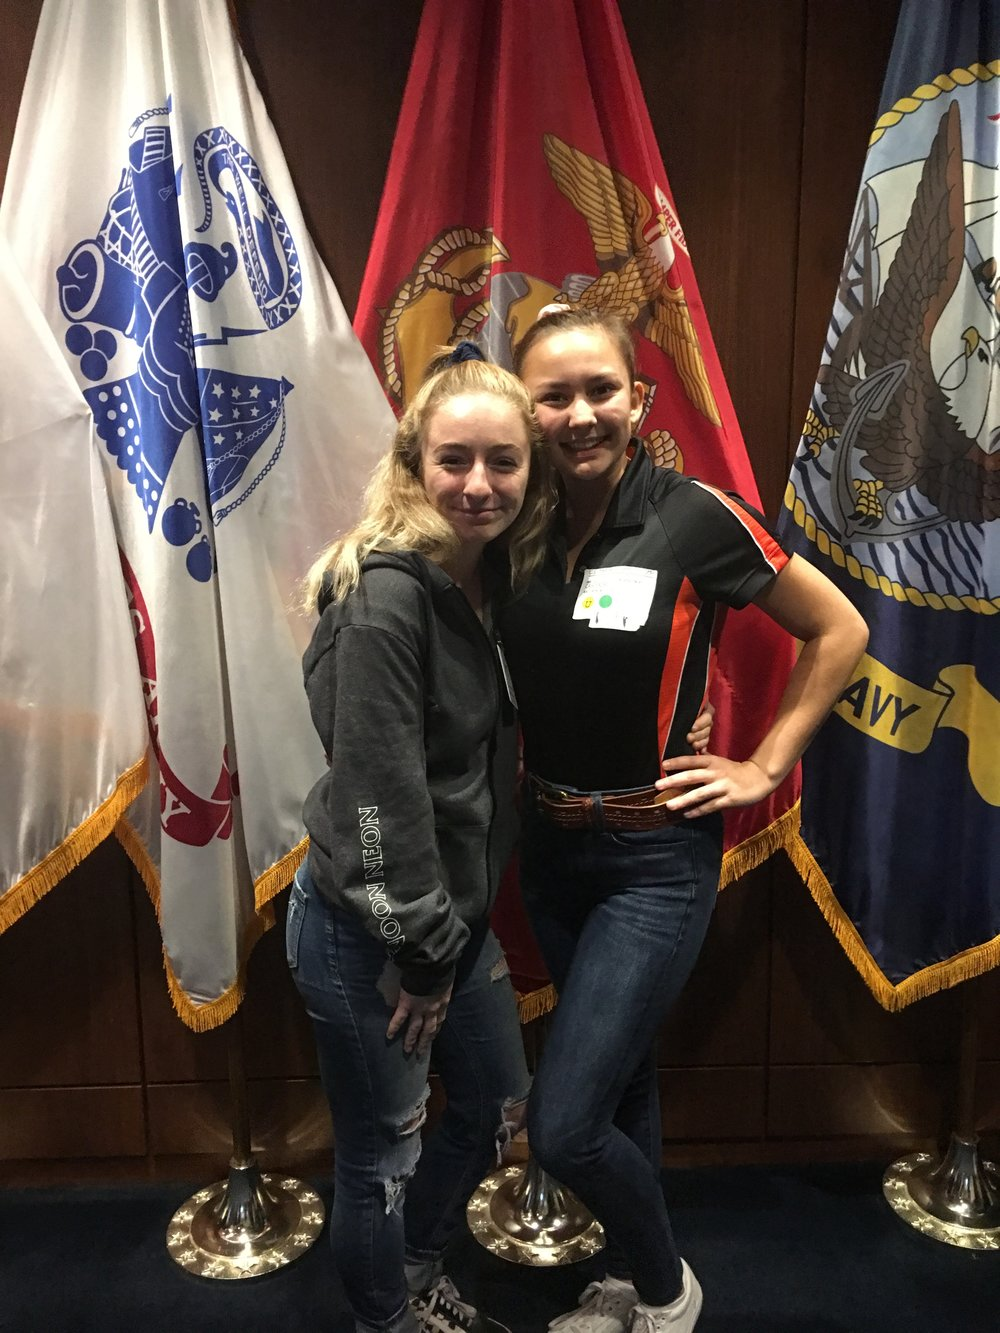 These Two Young Ladies Just Took the Oath for the Marine Corps.   Kathryn Cabuyadao (right), and Katelnne Eber will be reporting to Parris Island in August to start recruit training. Kathryn is the daughter of Loretta Cabuyadao, owner of Kopy Kings.